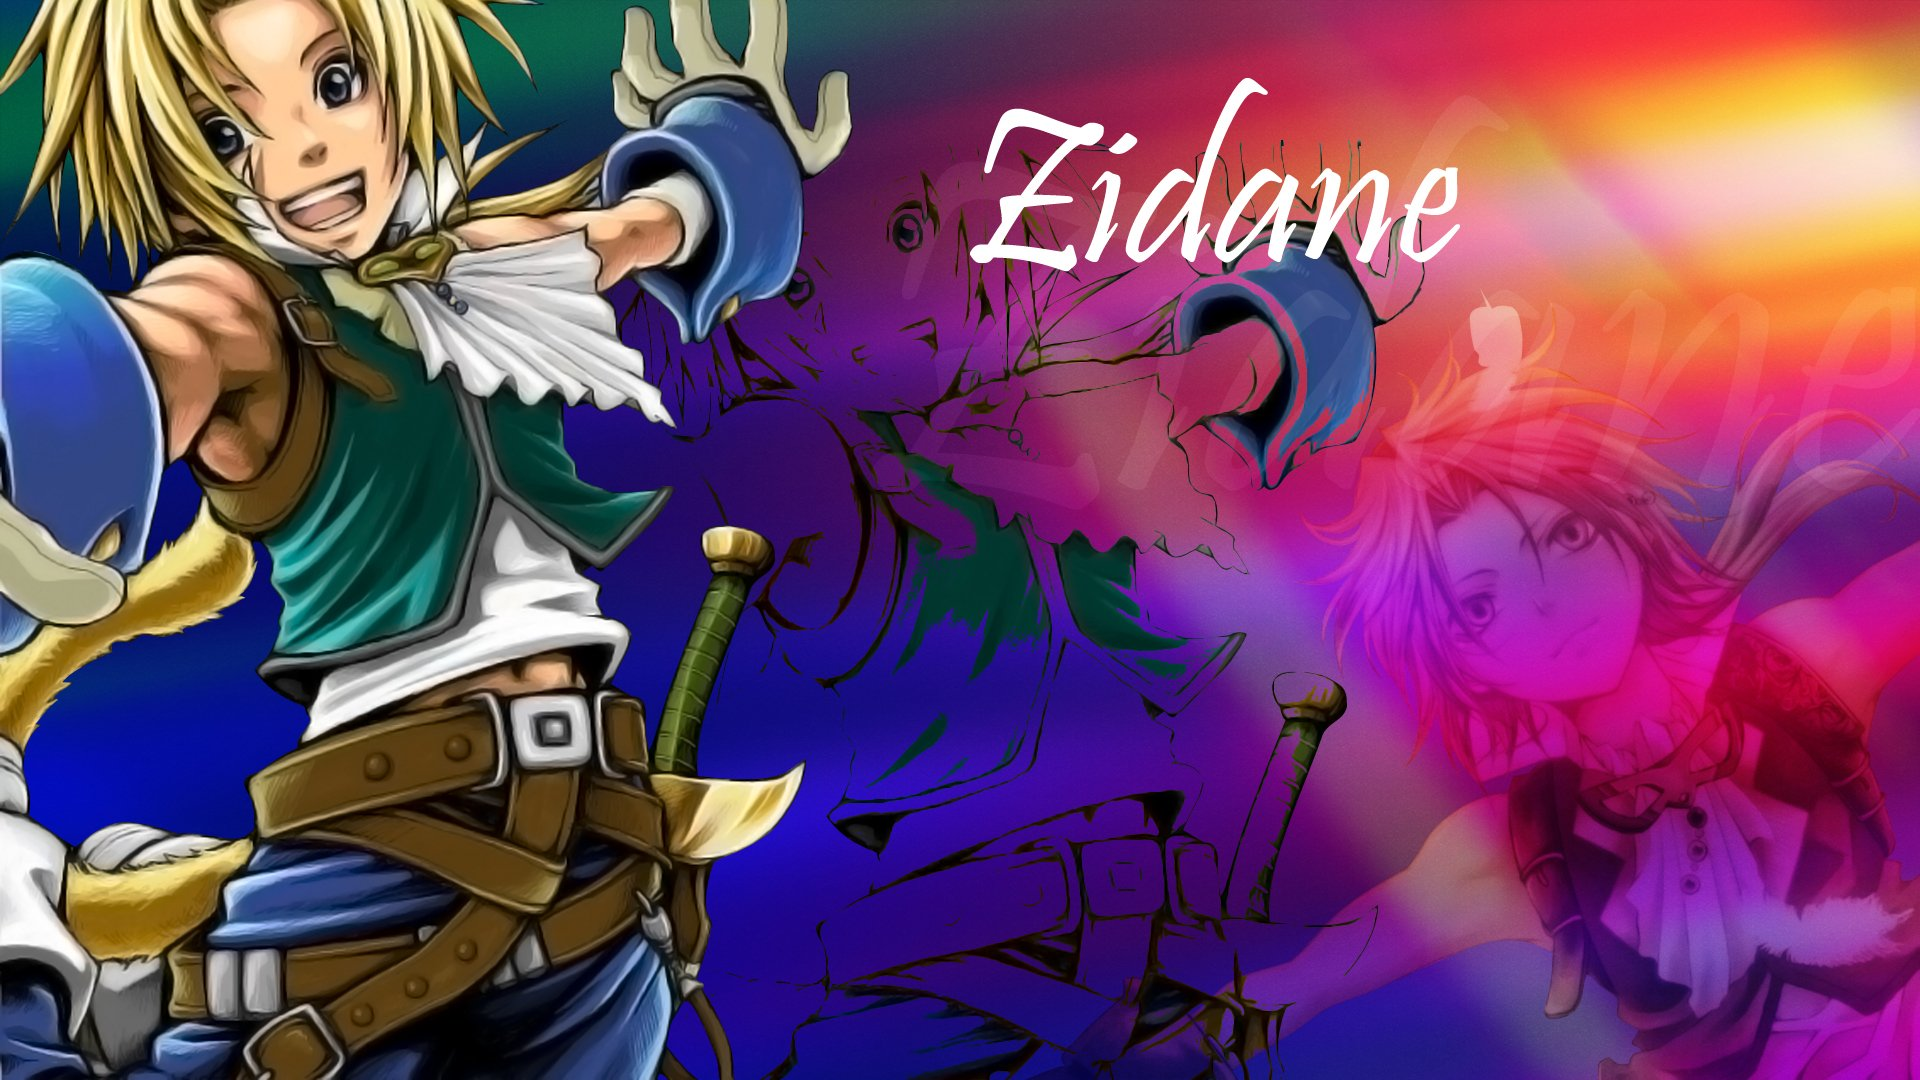 Video Game - final fantasy IX  Zidane Tribal Wallpaper